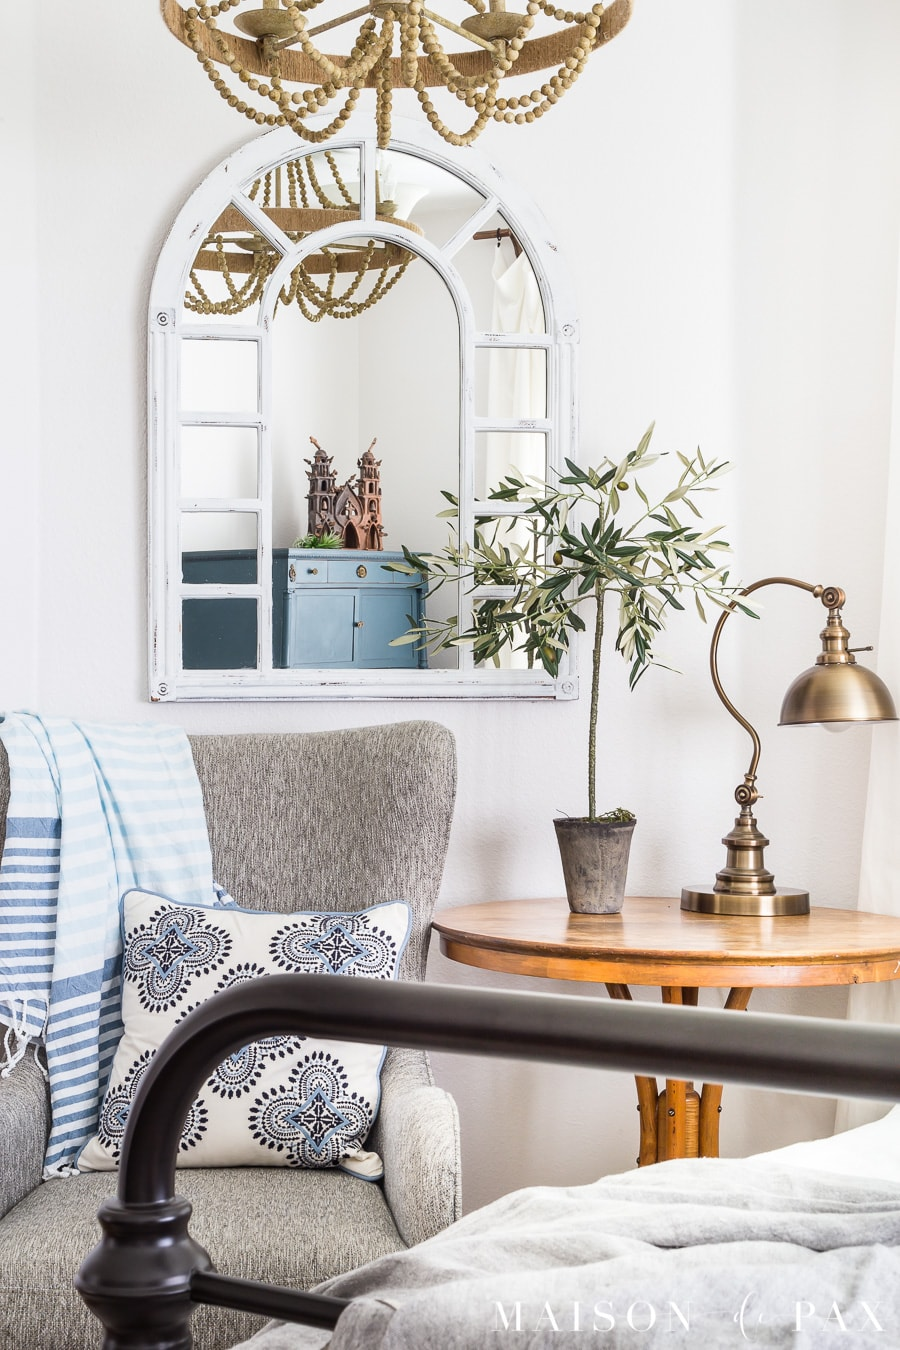 Efficient decorating ideas: mirrors. Find out which accessories are most versatile in your home! #efficiency #budgetfriendly #budgetdecor #decoratingideas #accessories #homedecor